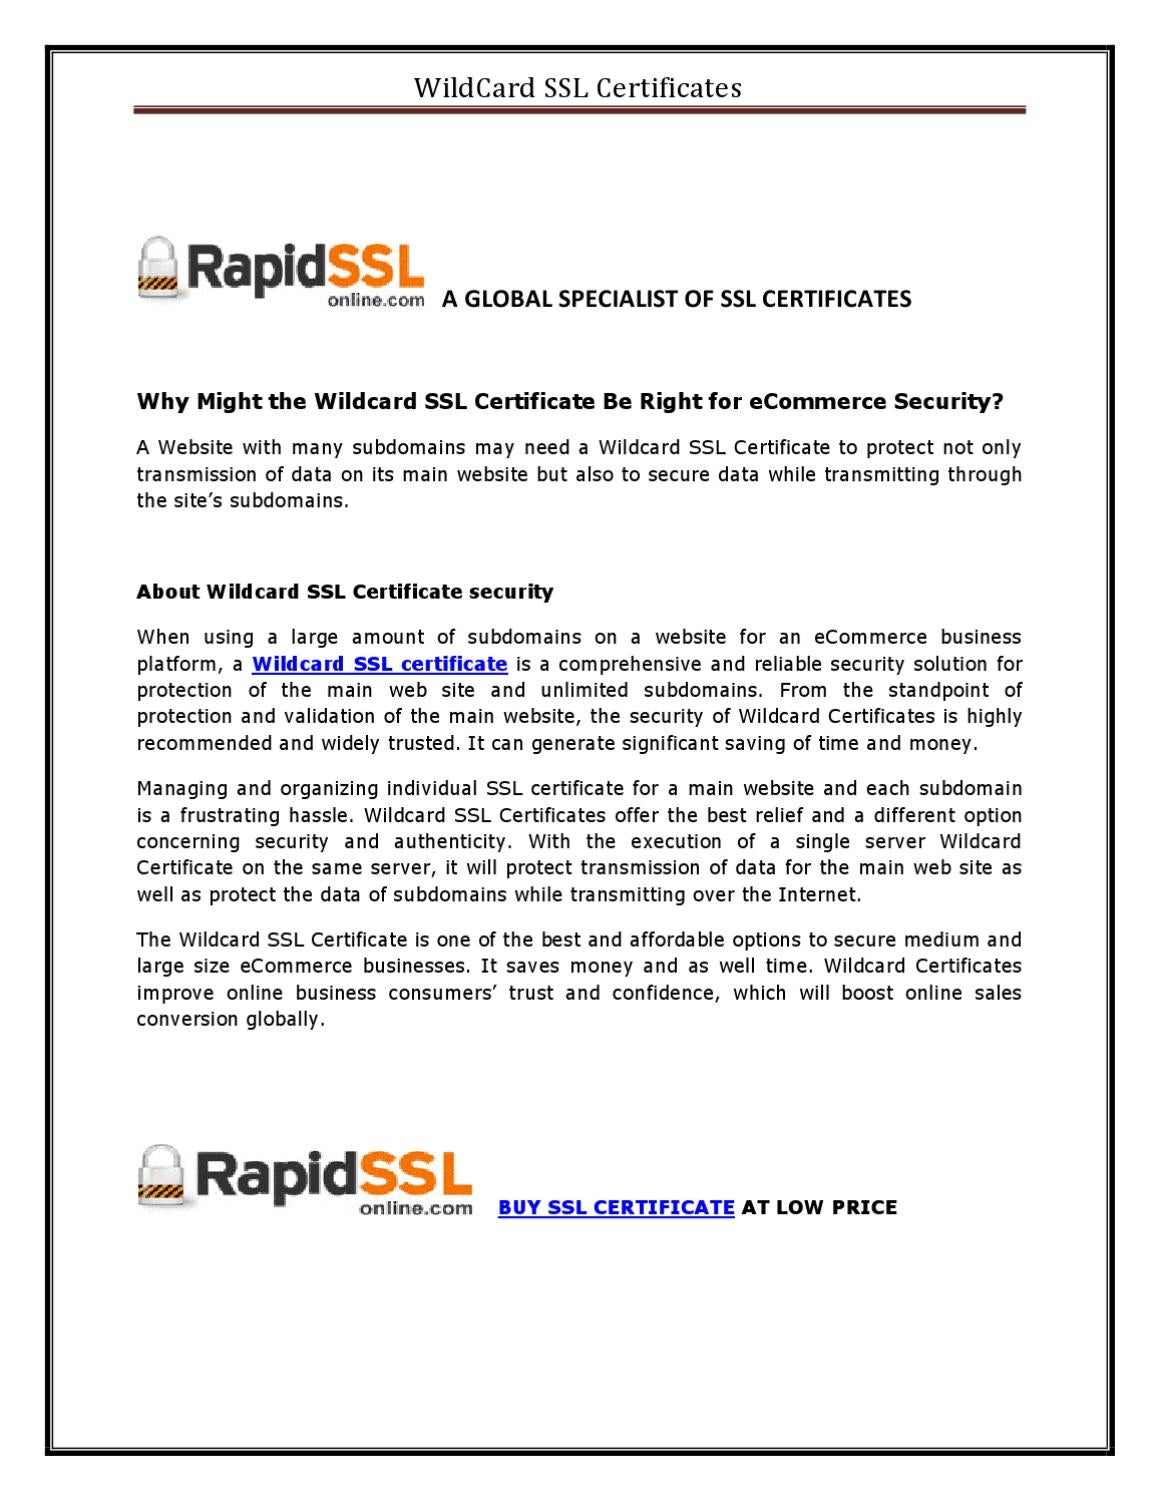 How Wildcard Ssl Certificate Useful For Ecommerce By Rapidsslonline